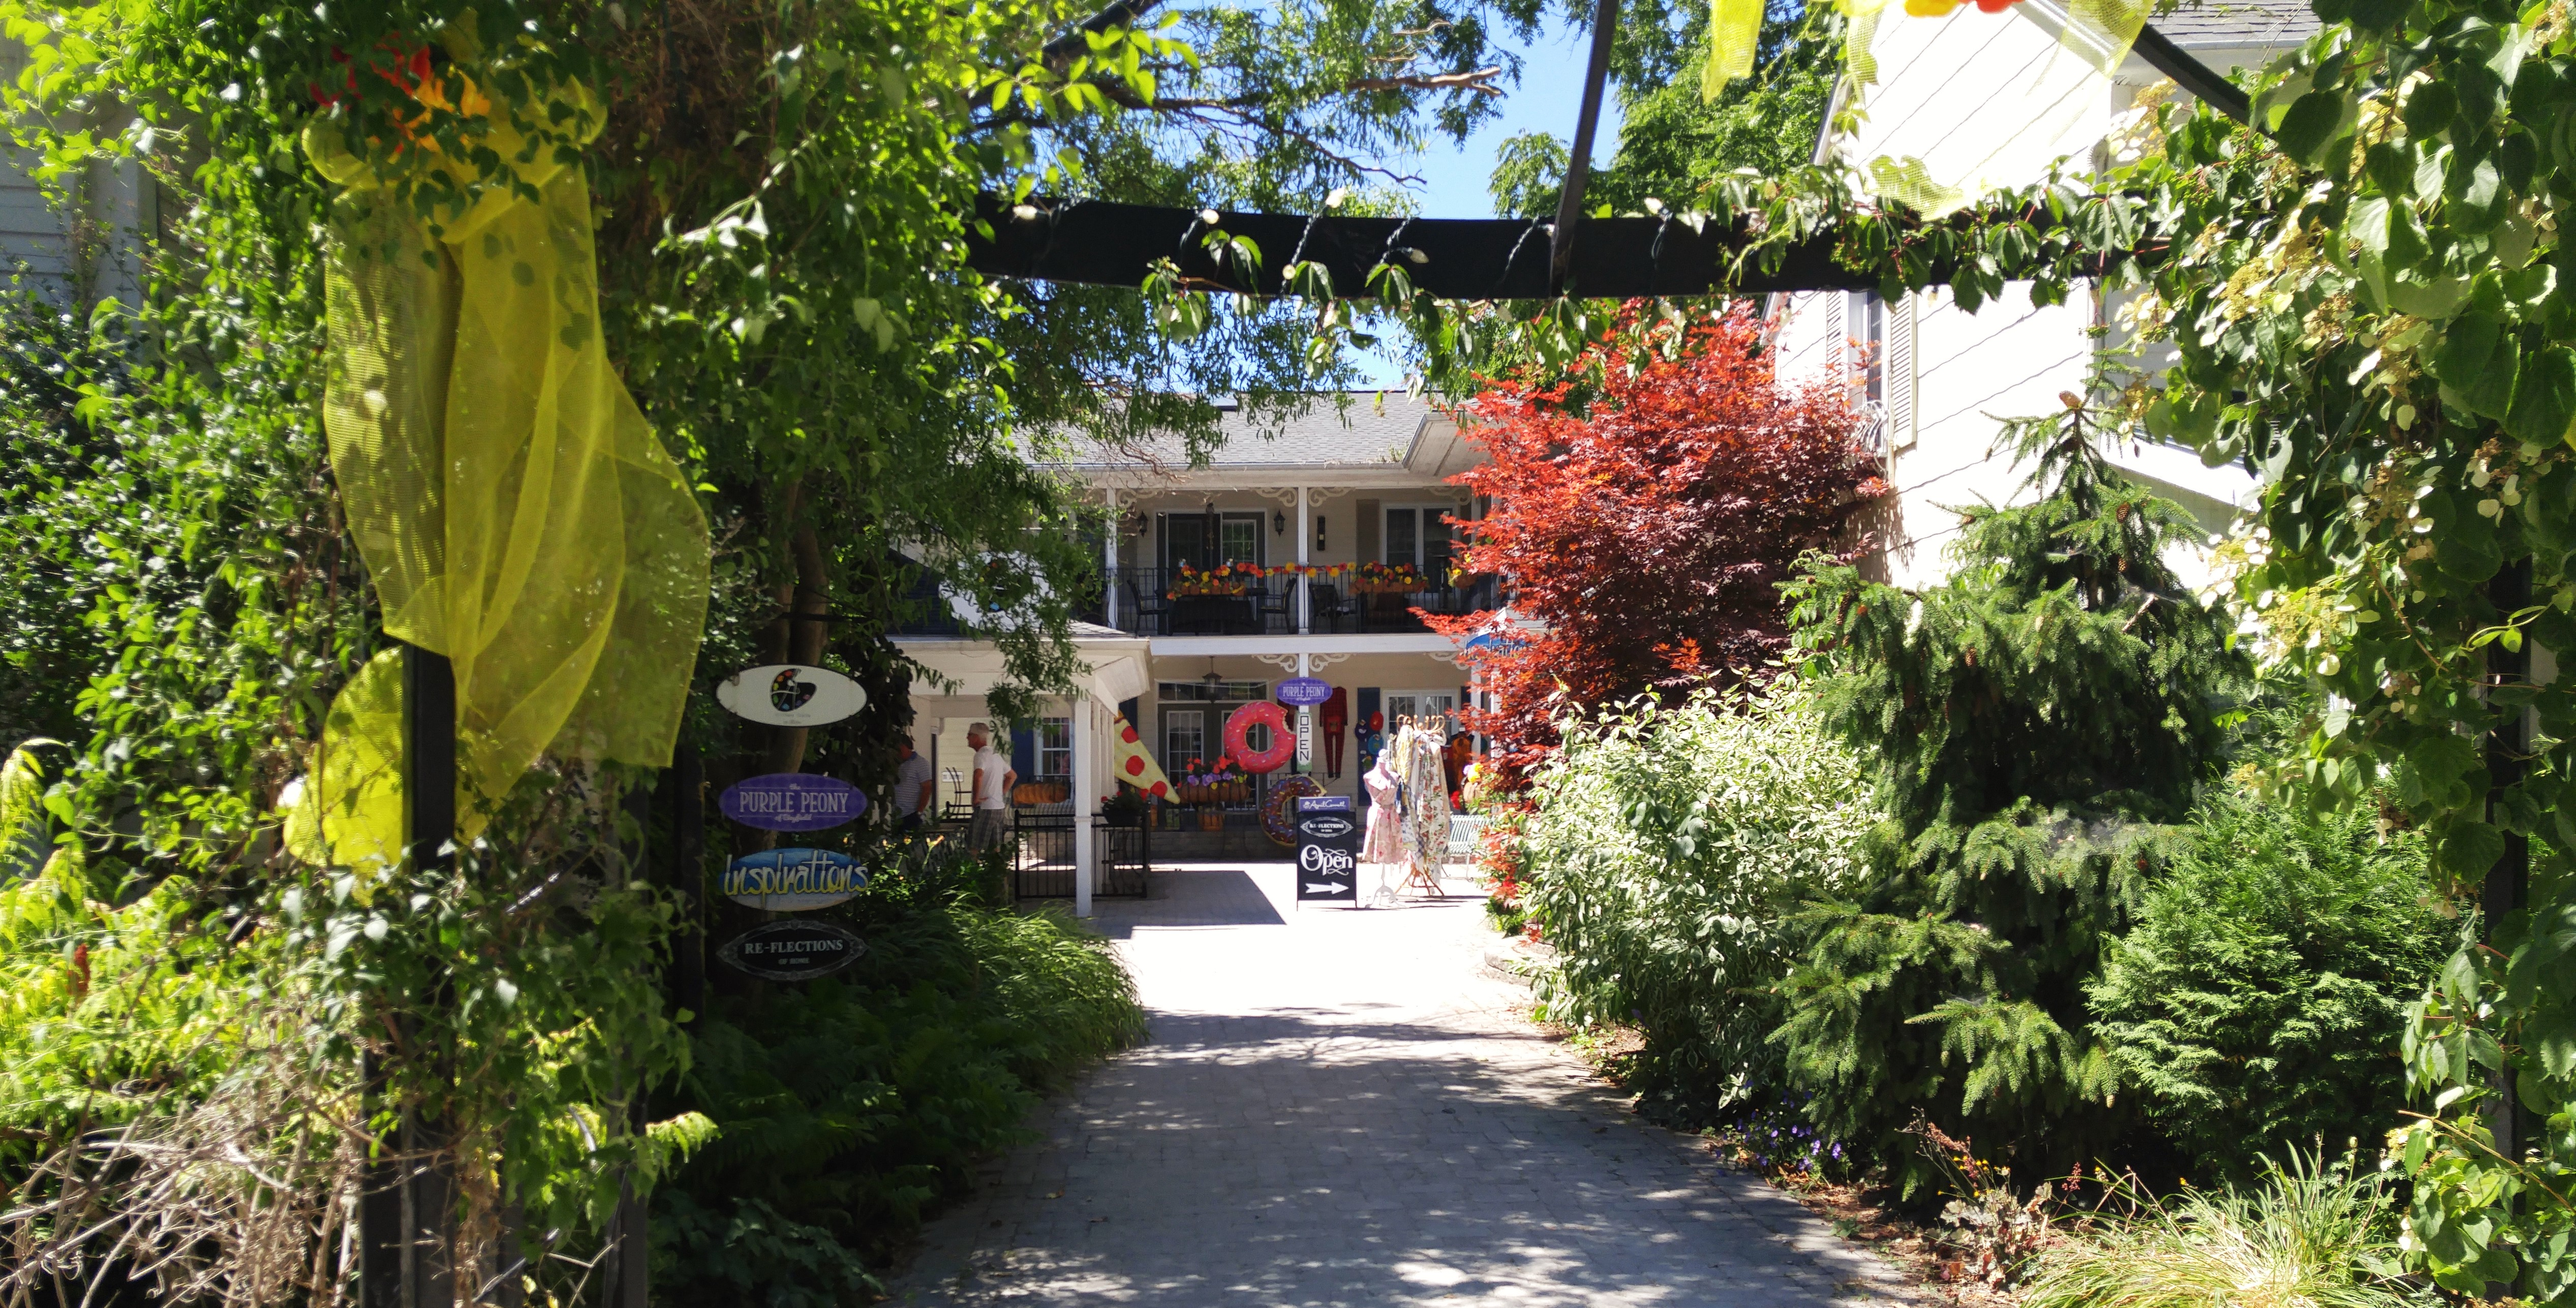 Shop alley, Bayfield Ontario